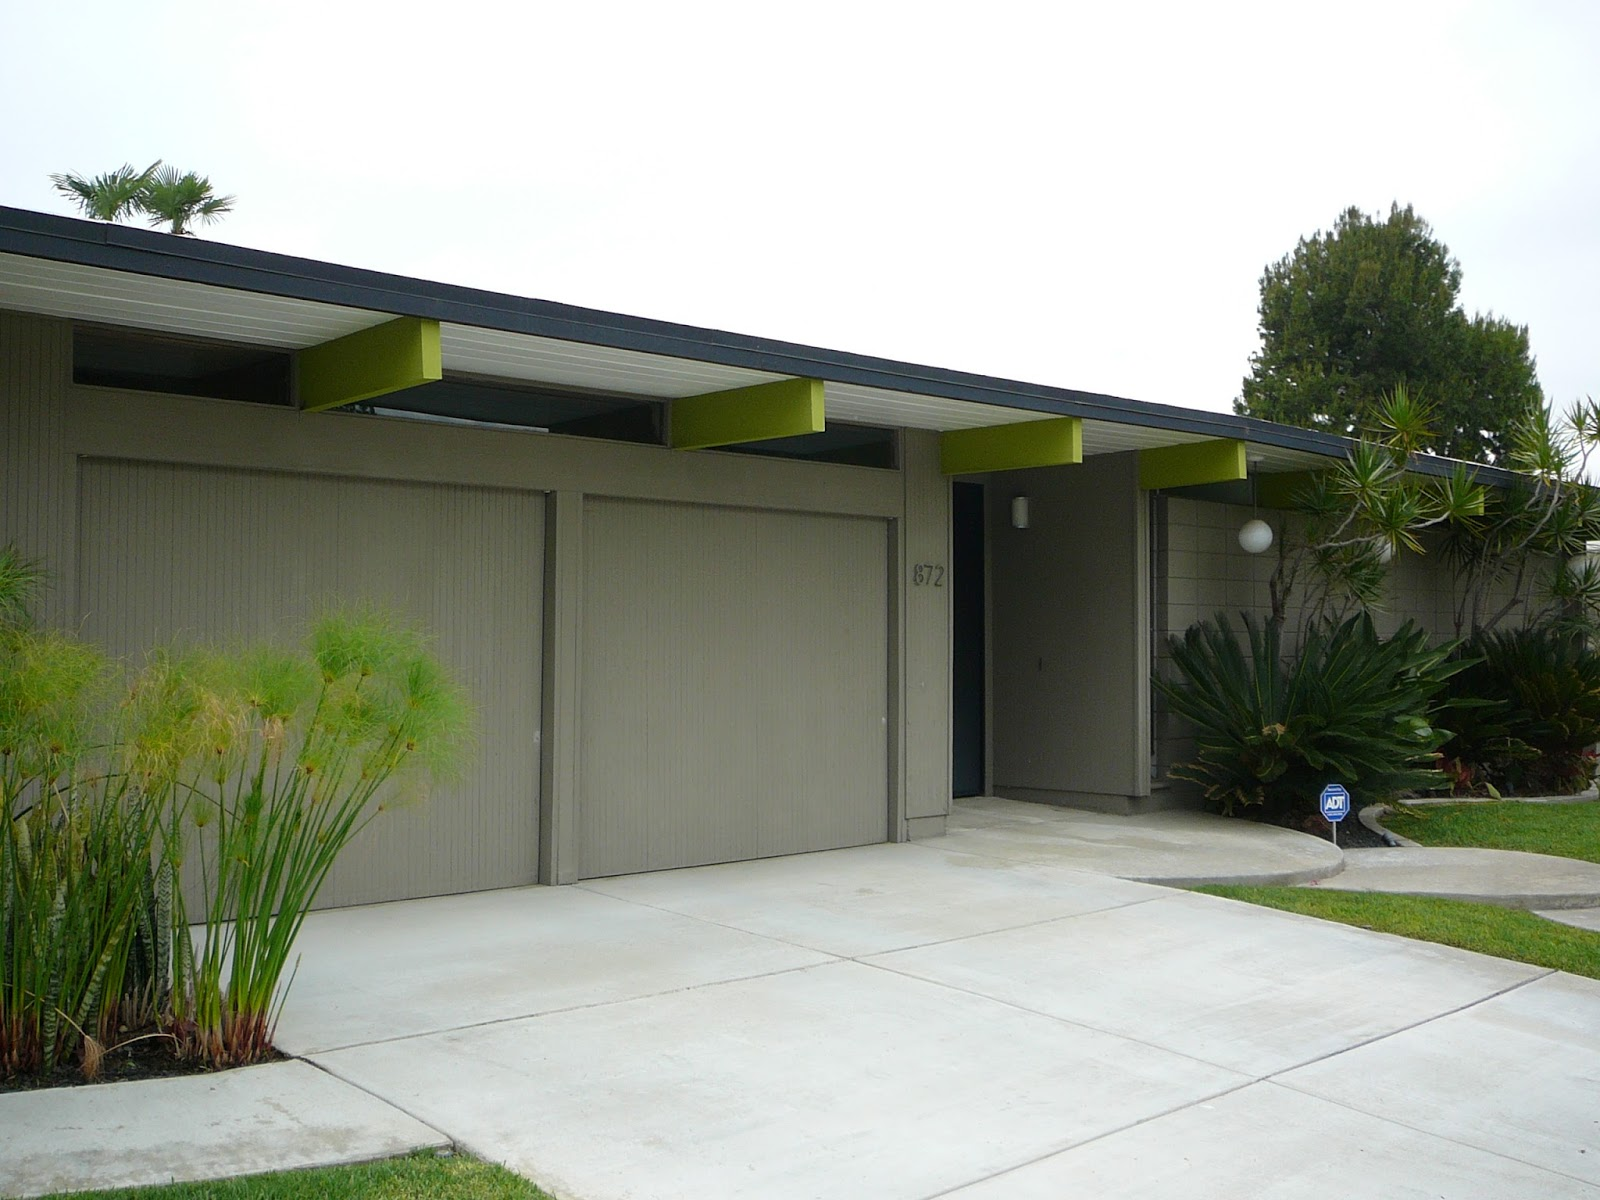 Orange County Structure: Mid-Century Modern Eichler Houses in the ...